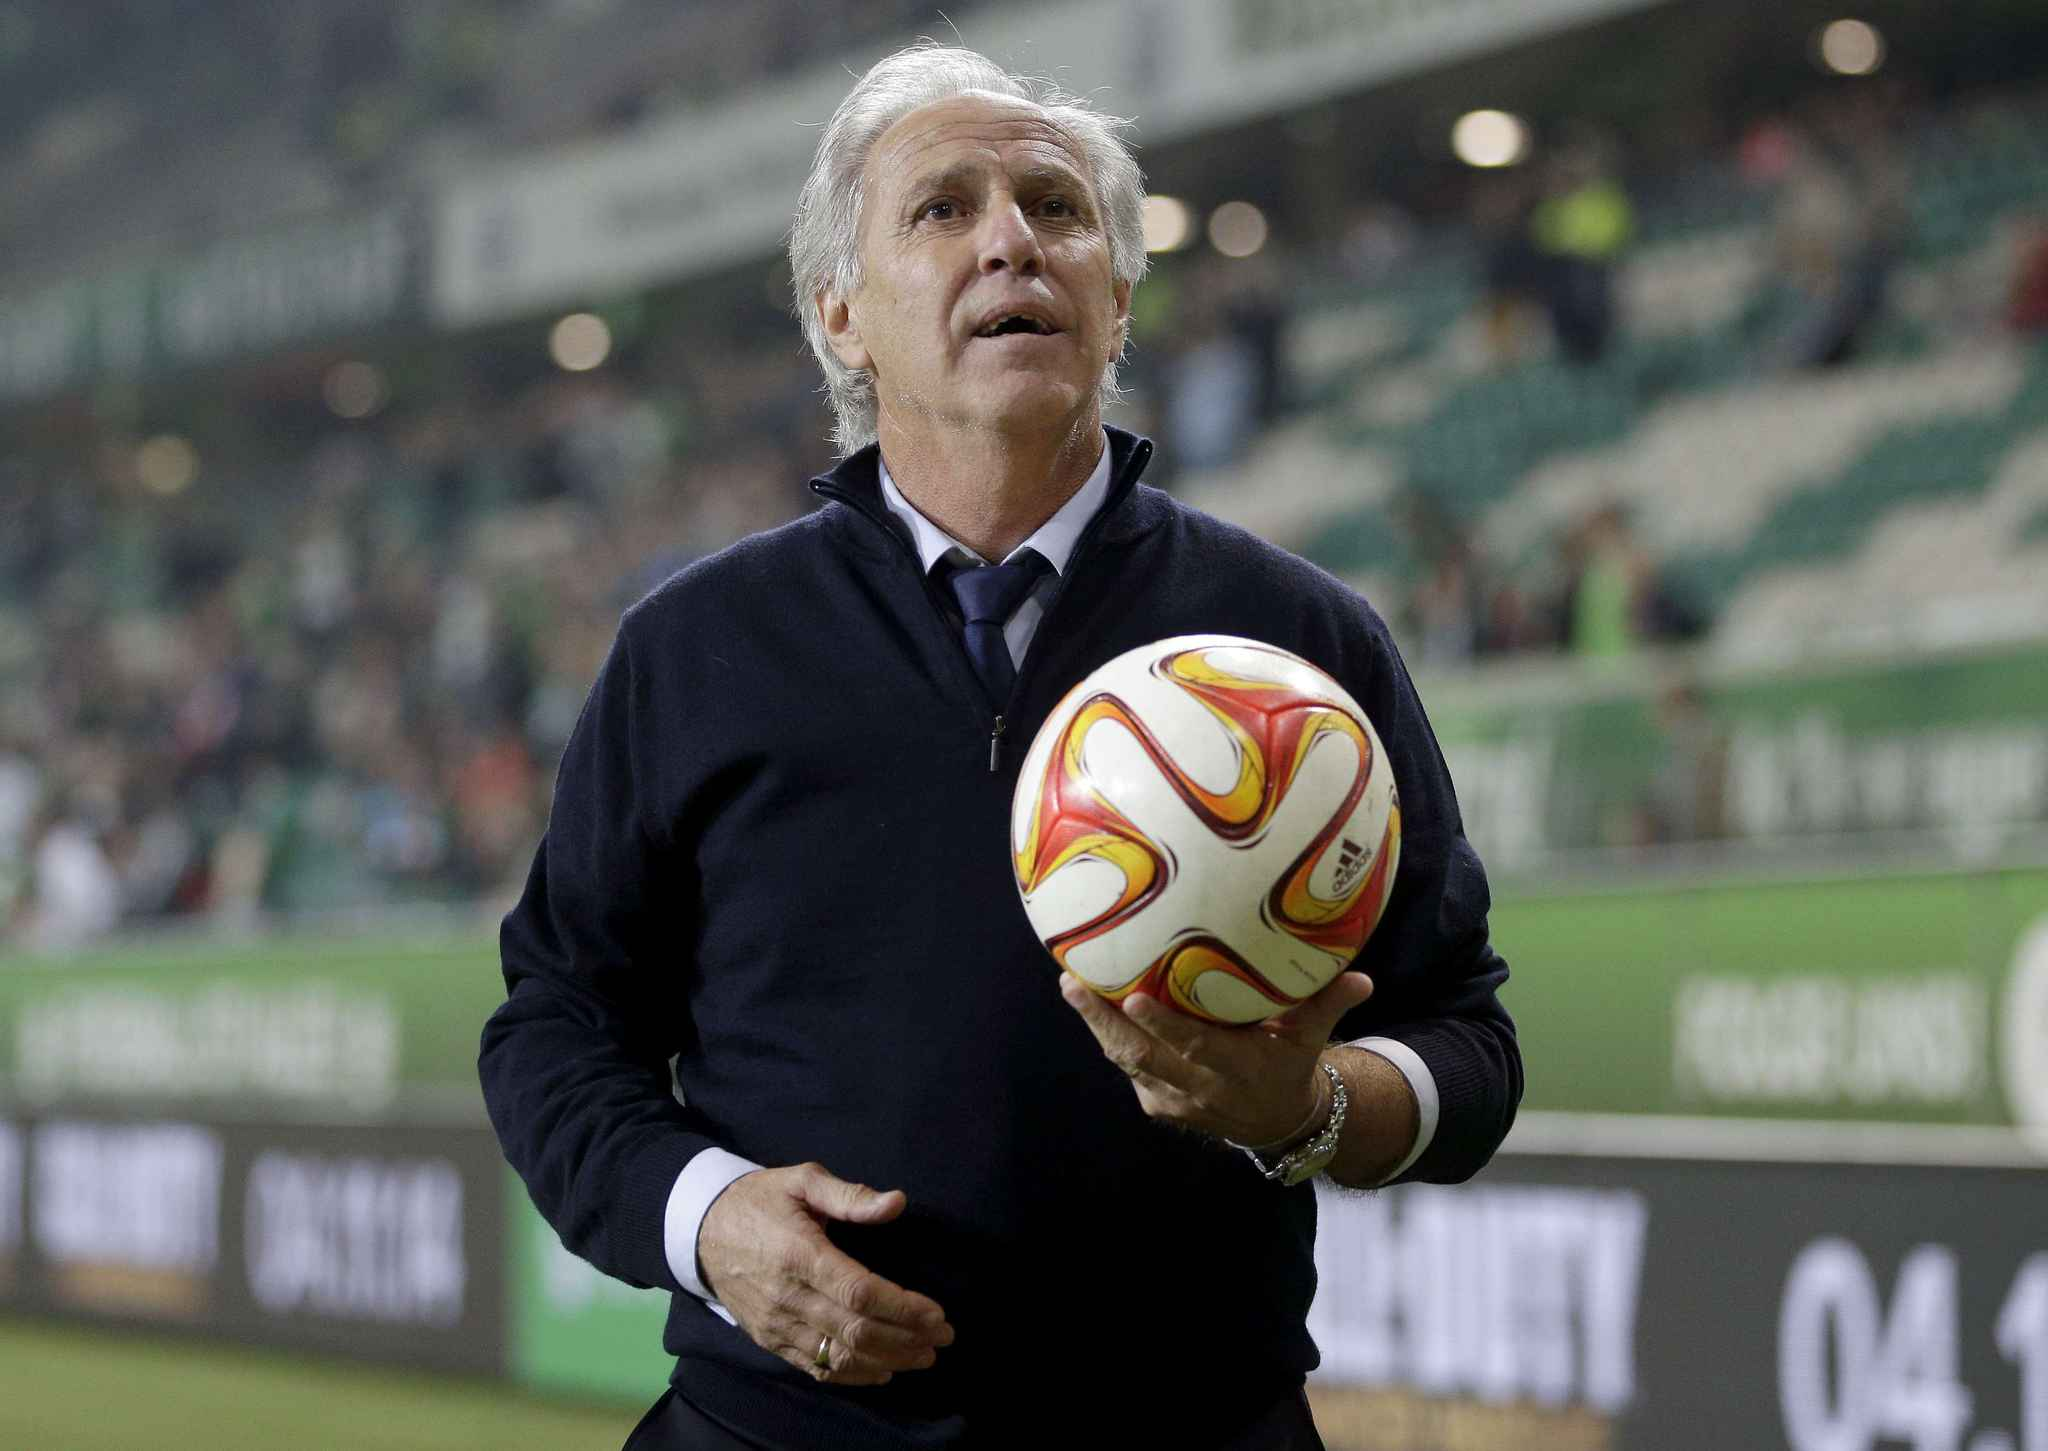 2048x1536-fit_losc-lille-head-coach-rene-girard-holds-a-match-ball-as-a-gift-for-the-supporters-after-the-europa